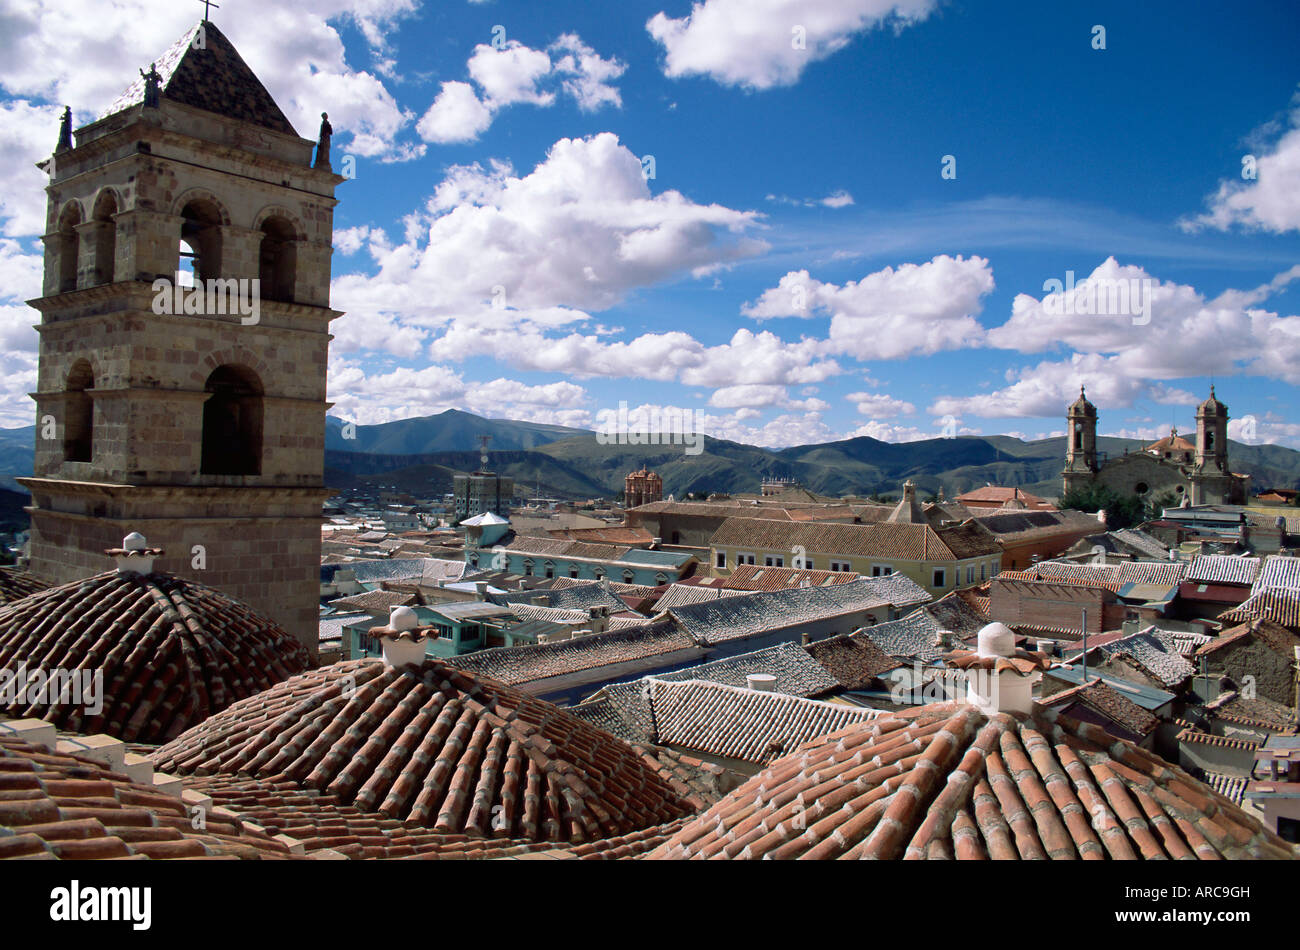 Roof top view of Christian Convent of San Francisco, Potosi, UNESCO World Heritage Site, Bolivia, South America - Stock Image